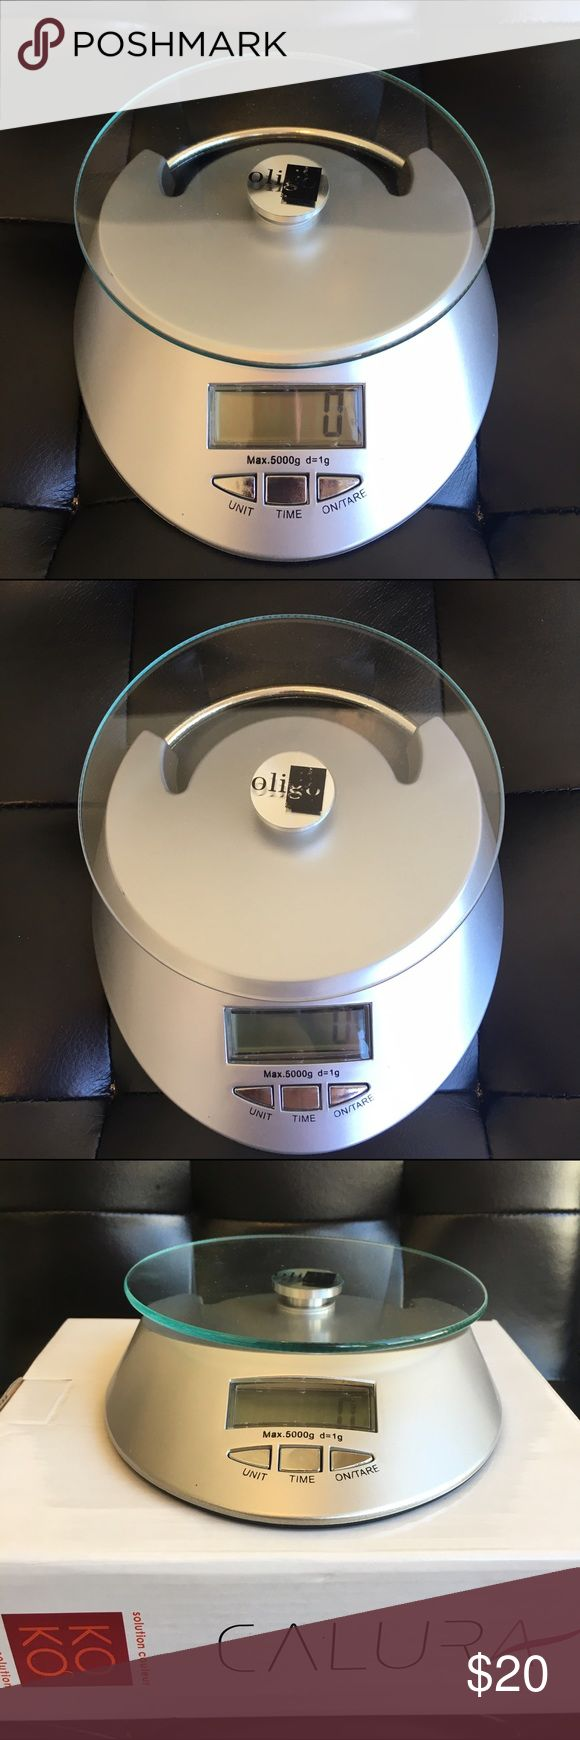 Shipping Scale Shipping Scale NWT and in original packaging. This is a small scale that can be used for anything. Requires 2 AA batteries not included. Priced to sell. #KW019 Accessories